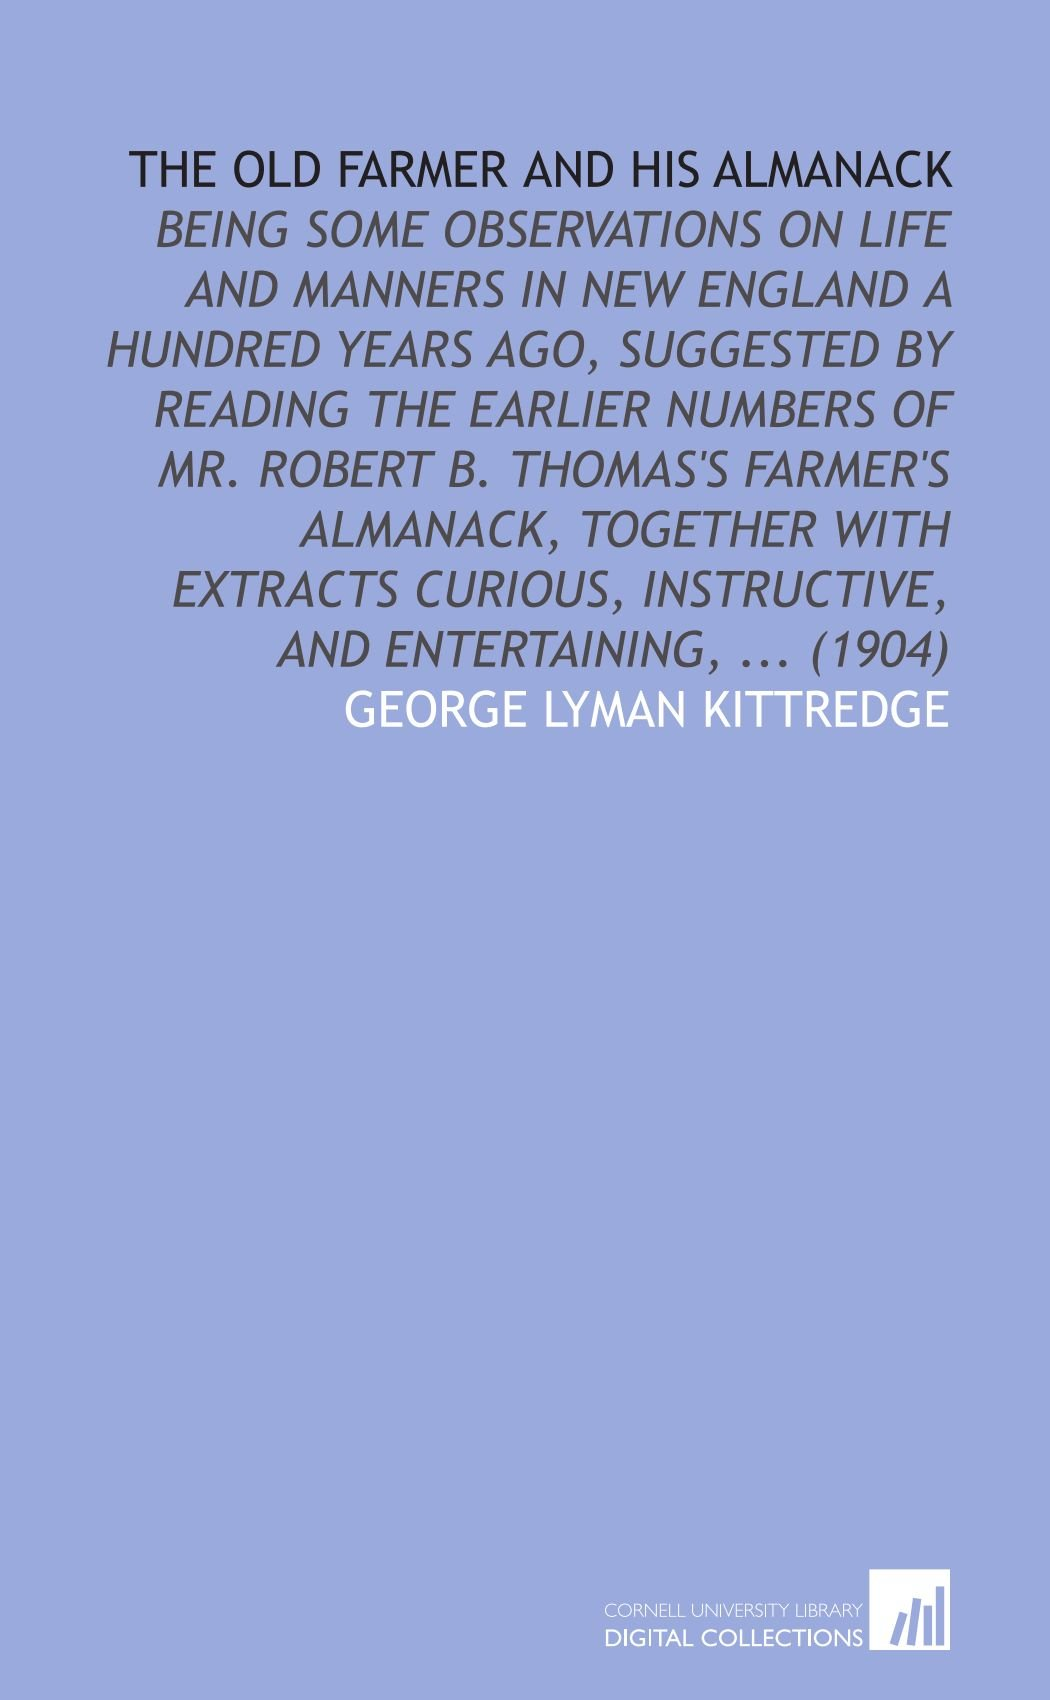 The Old Farmer and His Almanack: Being Some Observations on Life and Manners in New England a Hundred Years Ago, Suggested by Reading the Earlier ... Instructive, and Entertaining, ... (1904) pdf